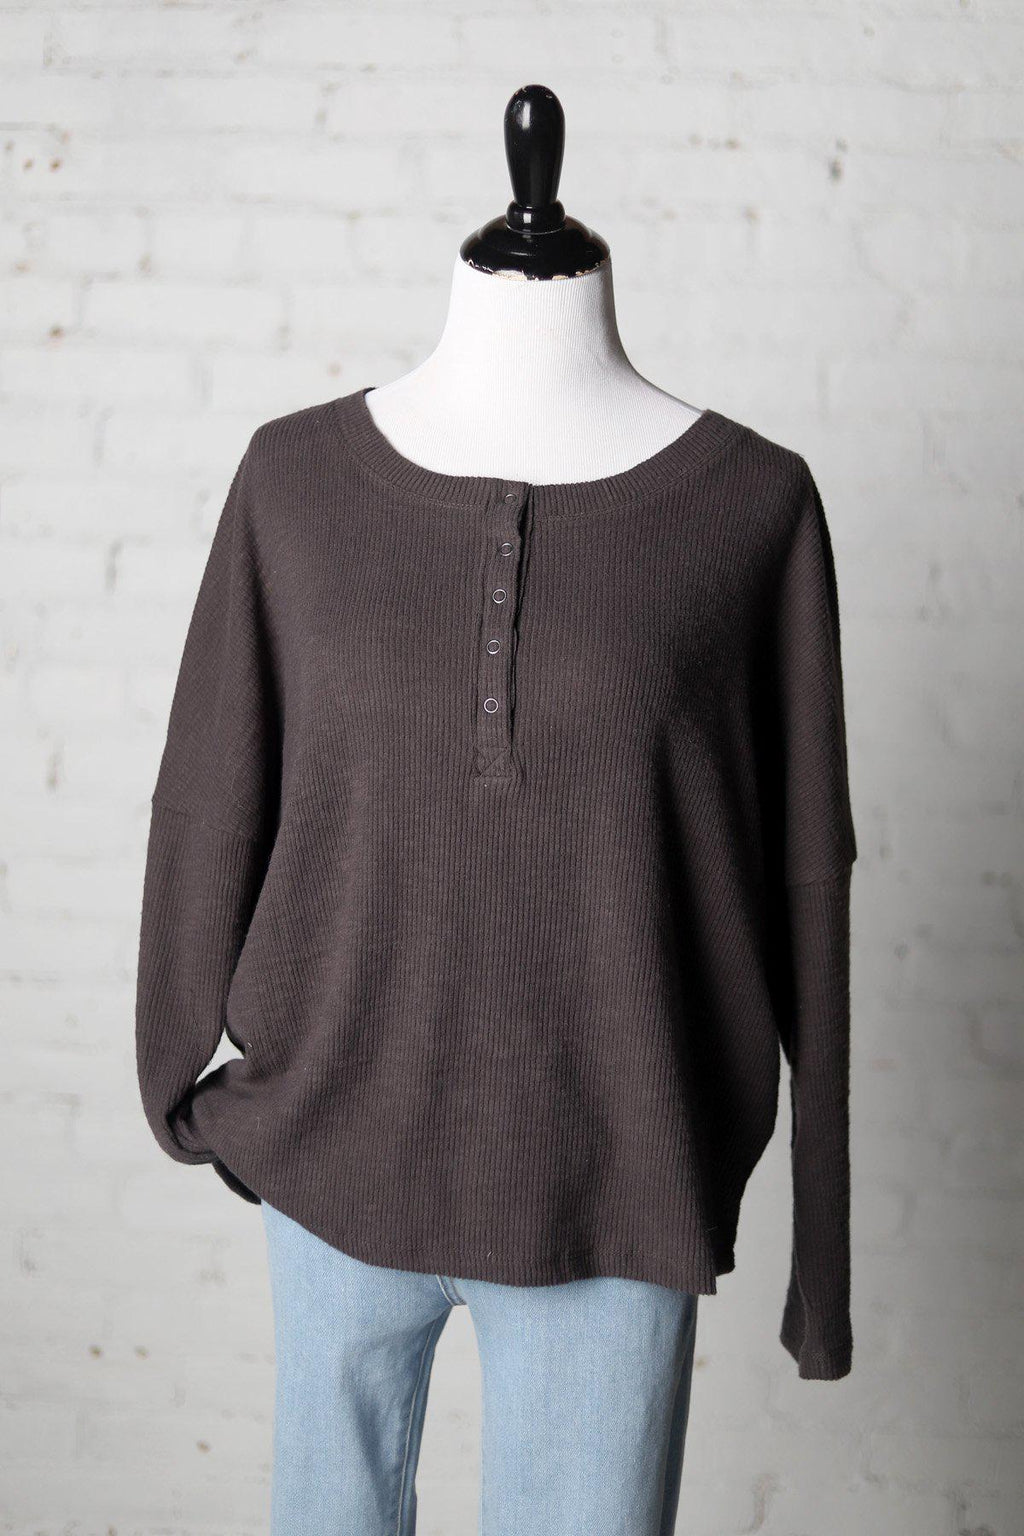 Elia Brushed Rib Henley Knit Top - Charcoal